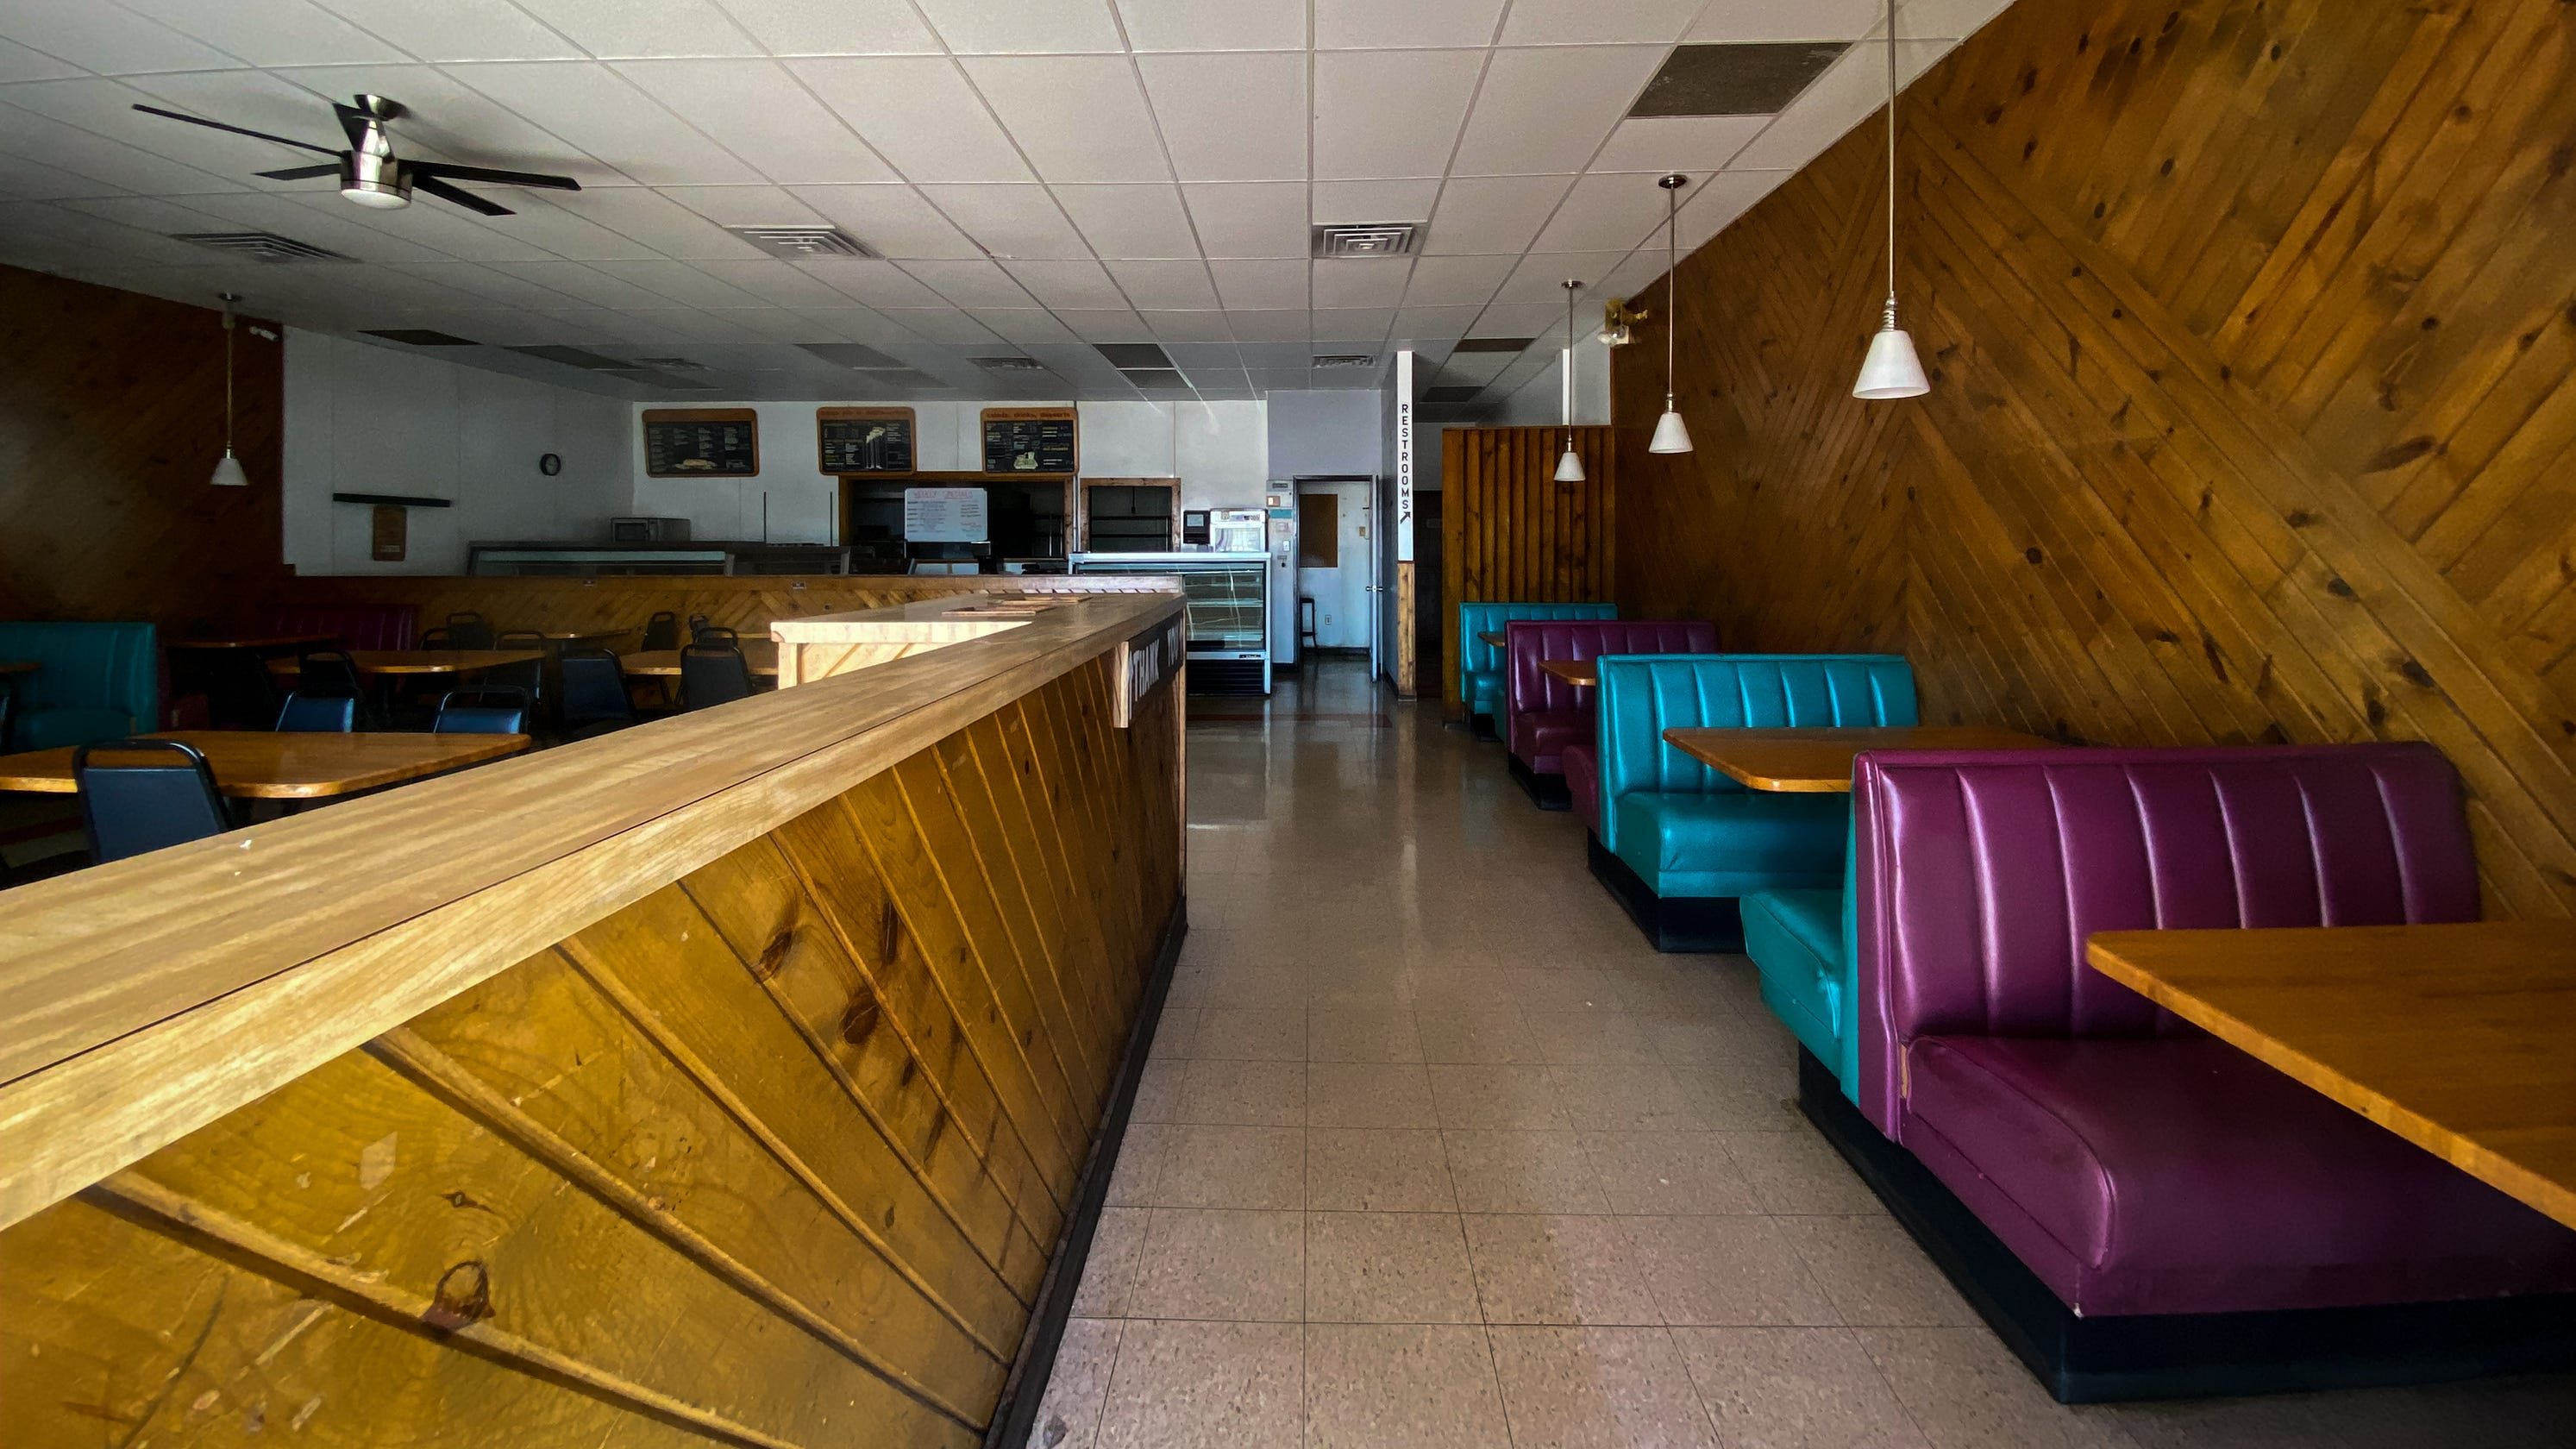 Restaurants that have closed - or are on the edge: For some in Lansing area, COVID-19 was too much